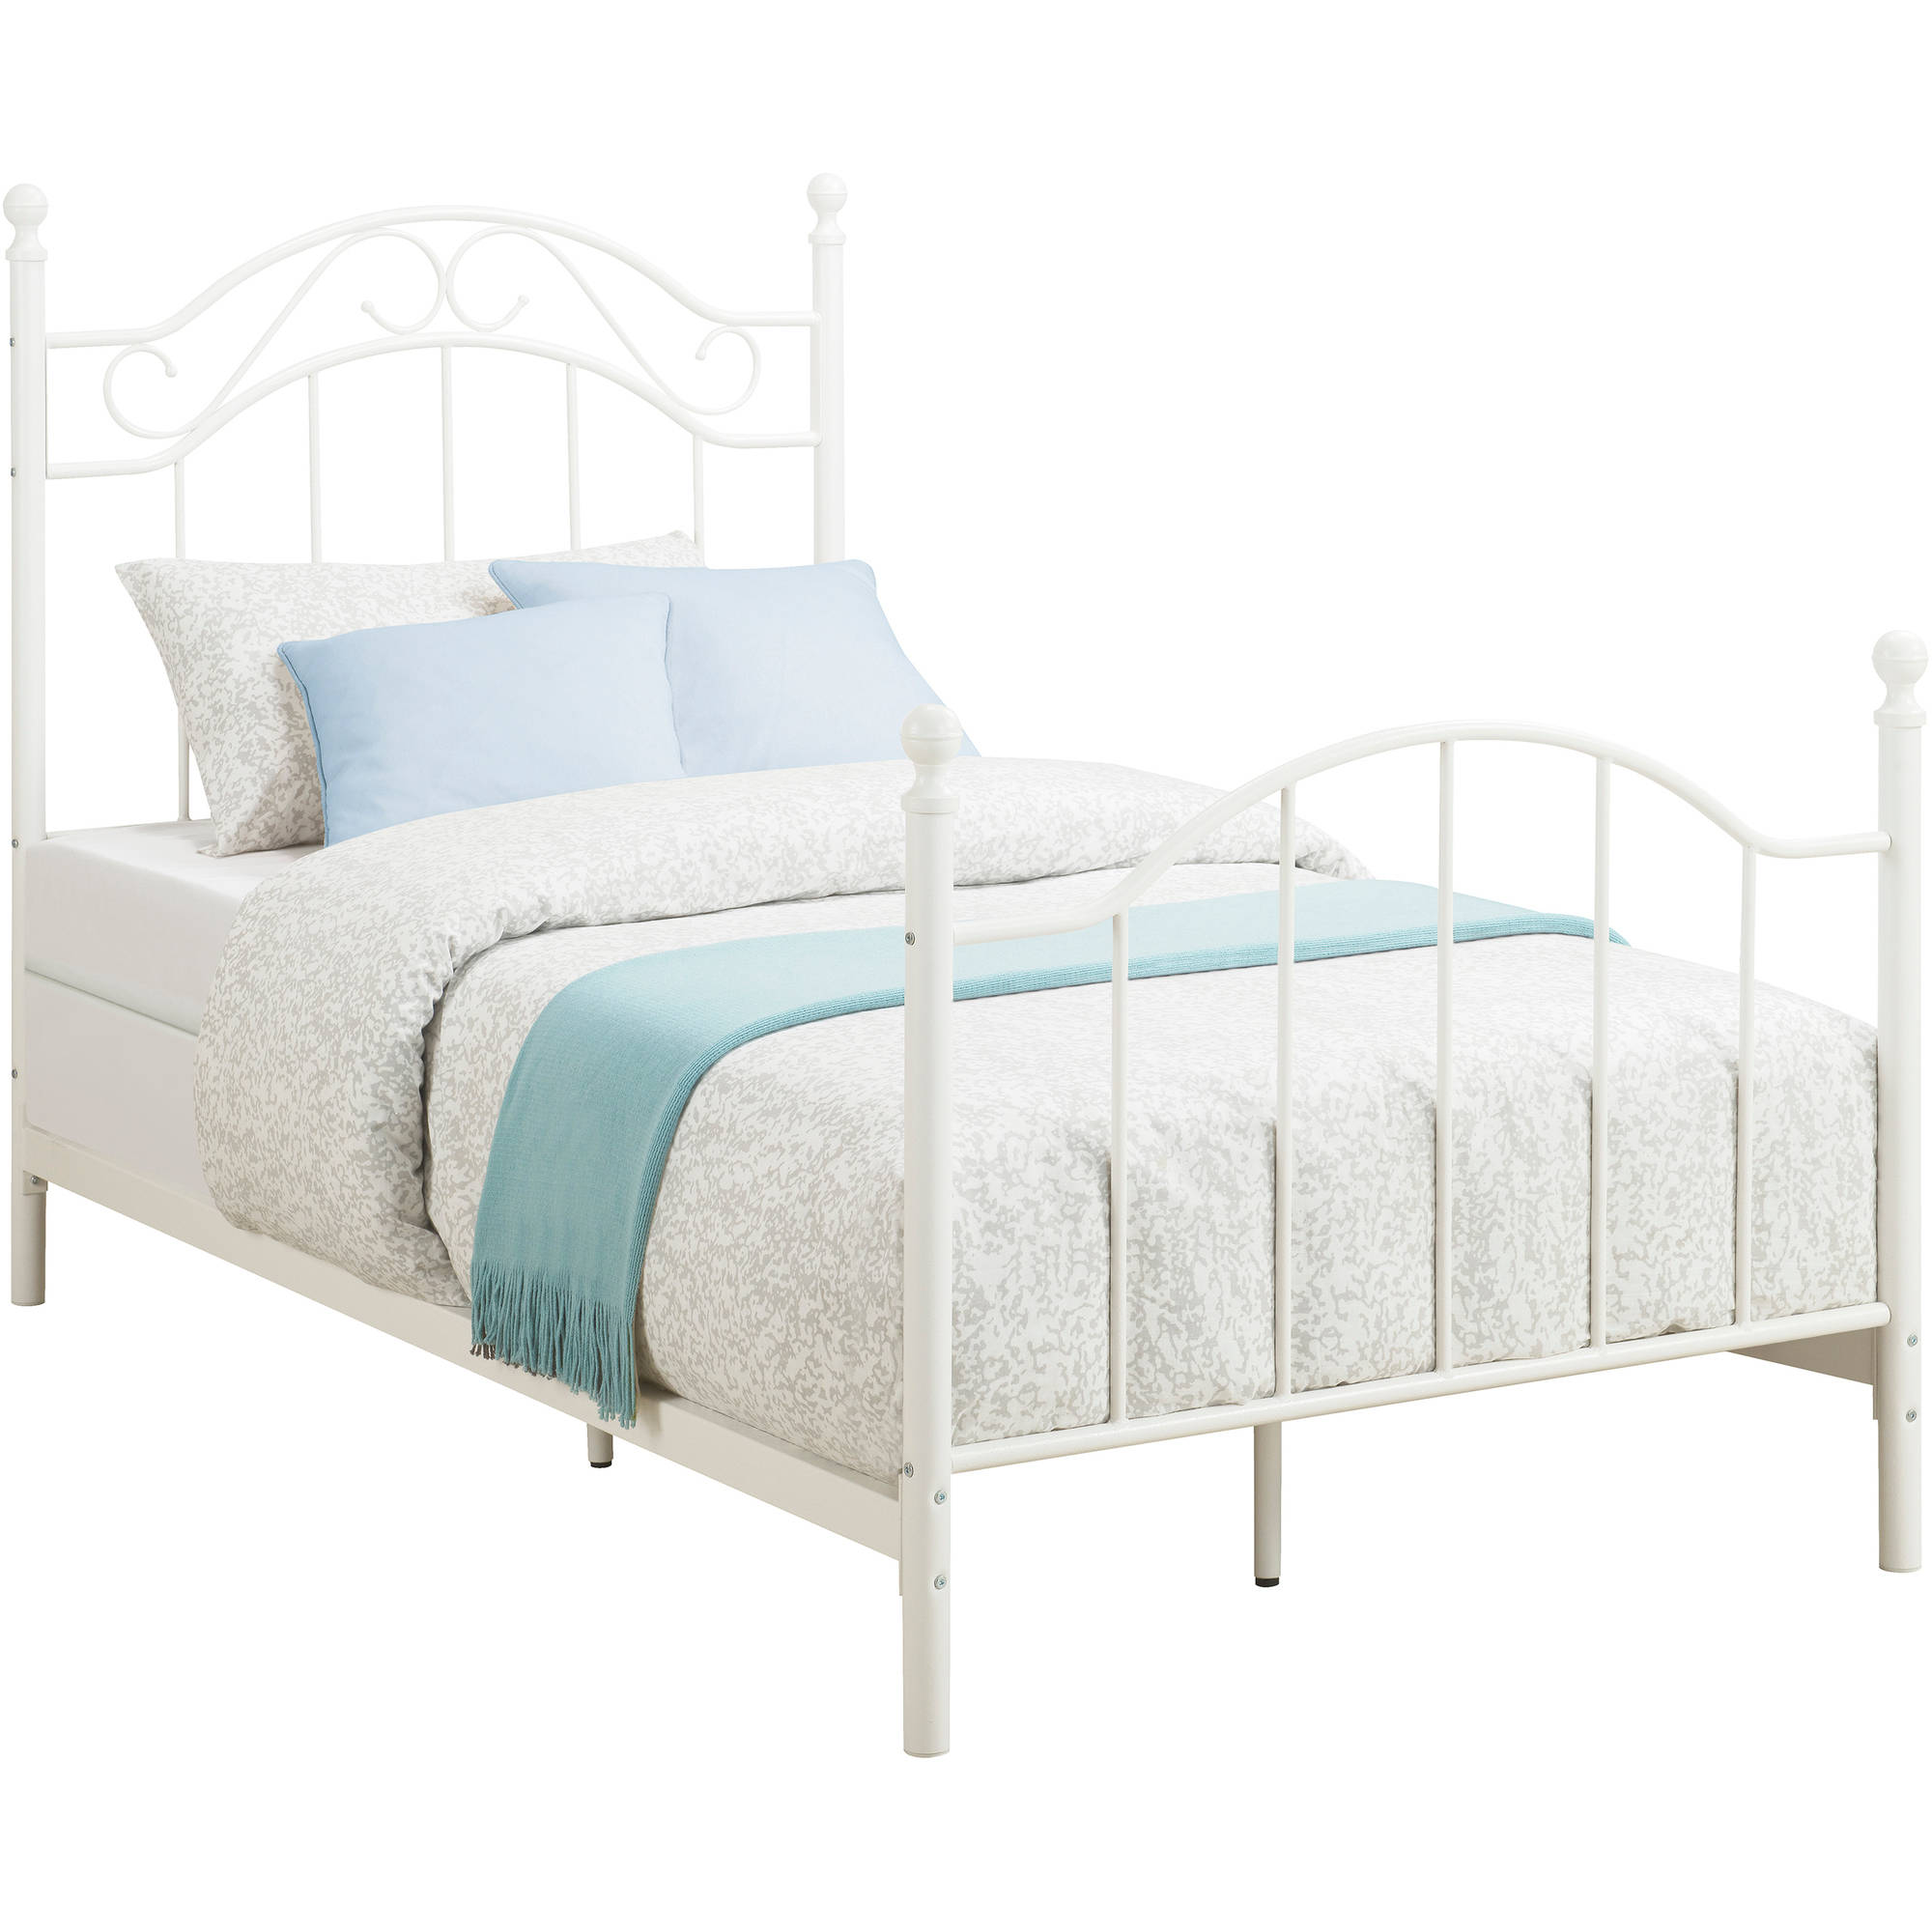 Nice Twin Metal Bed Frame Decor